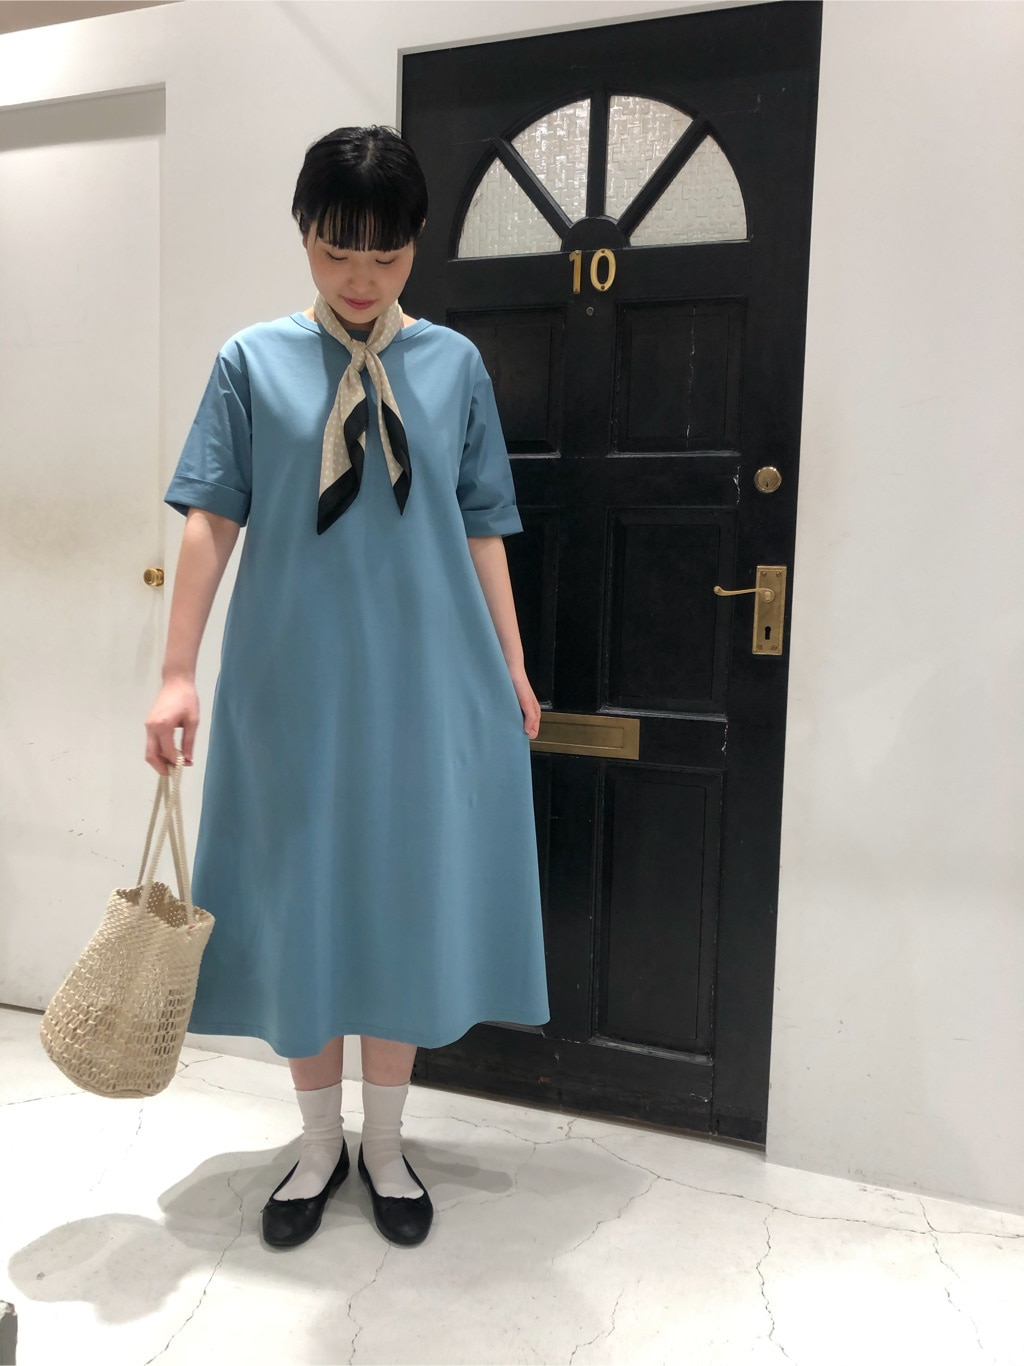 Dot and Stripes CHILD WOMAN ルクアイーレ 身長:165cm 2020.06.19